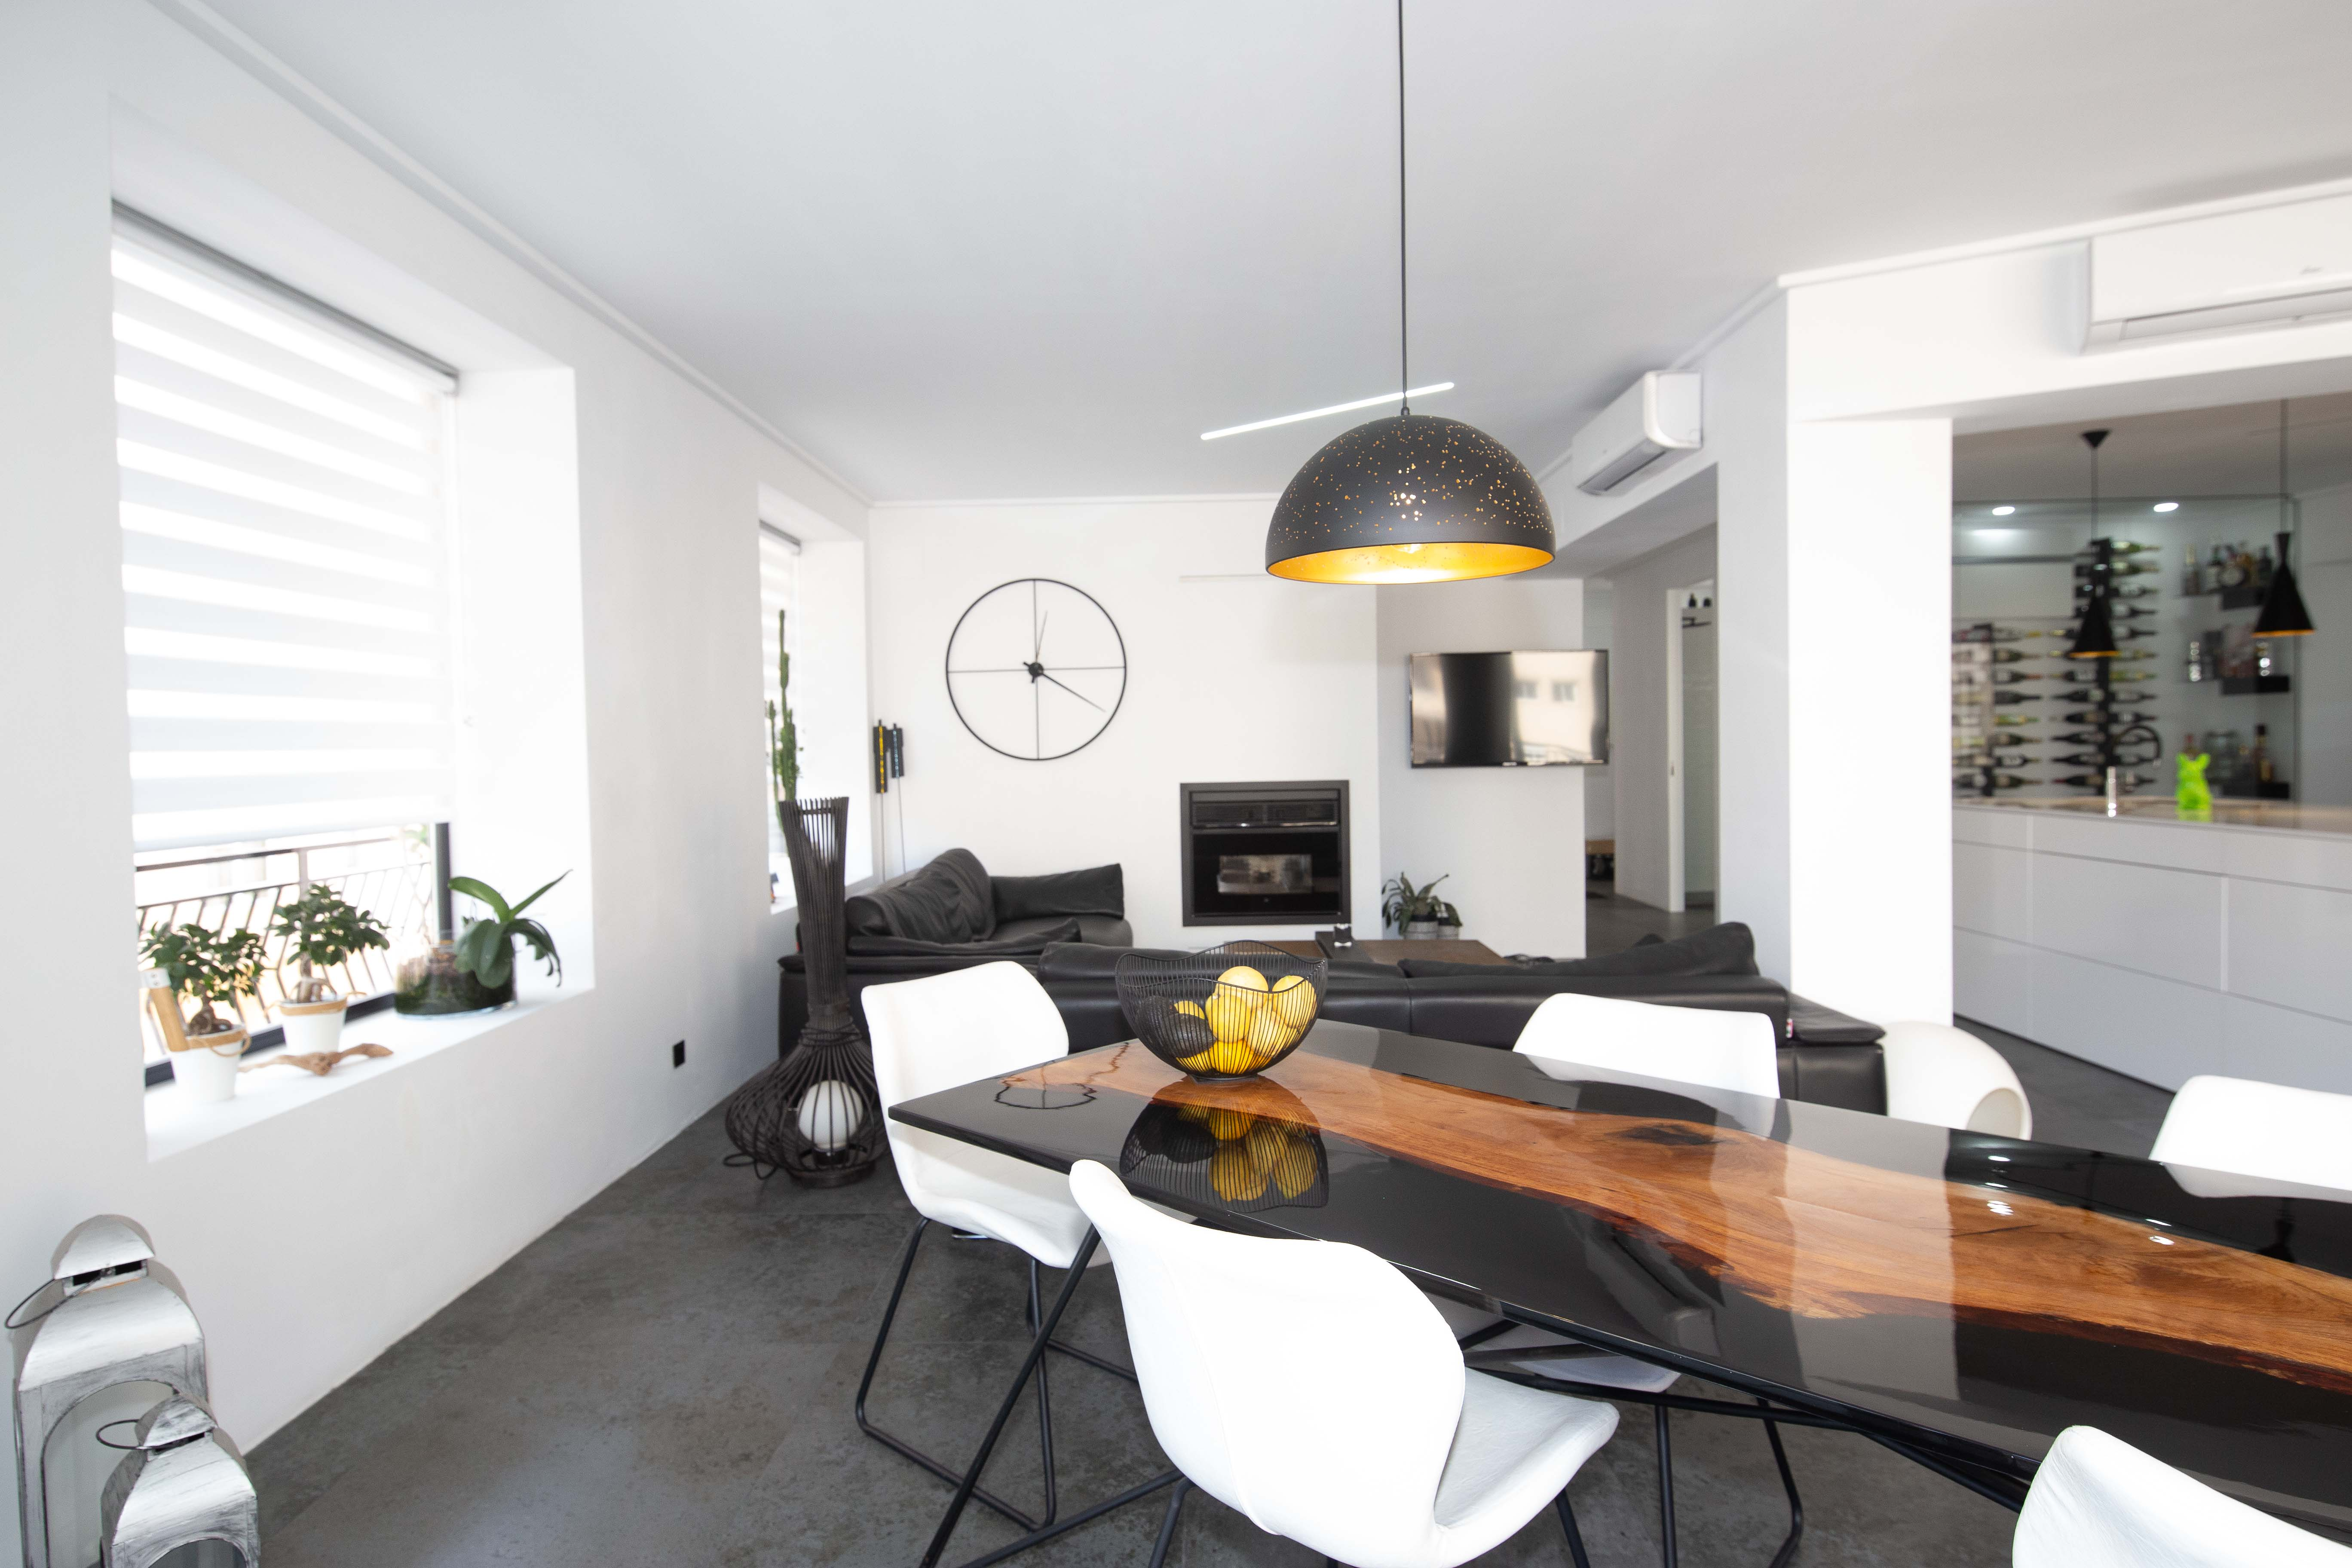 Photogallery - 11 - Vives Pons Homes